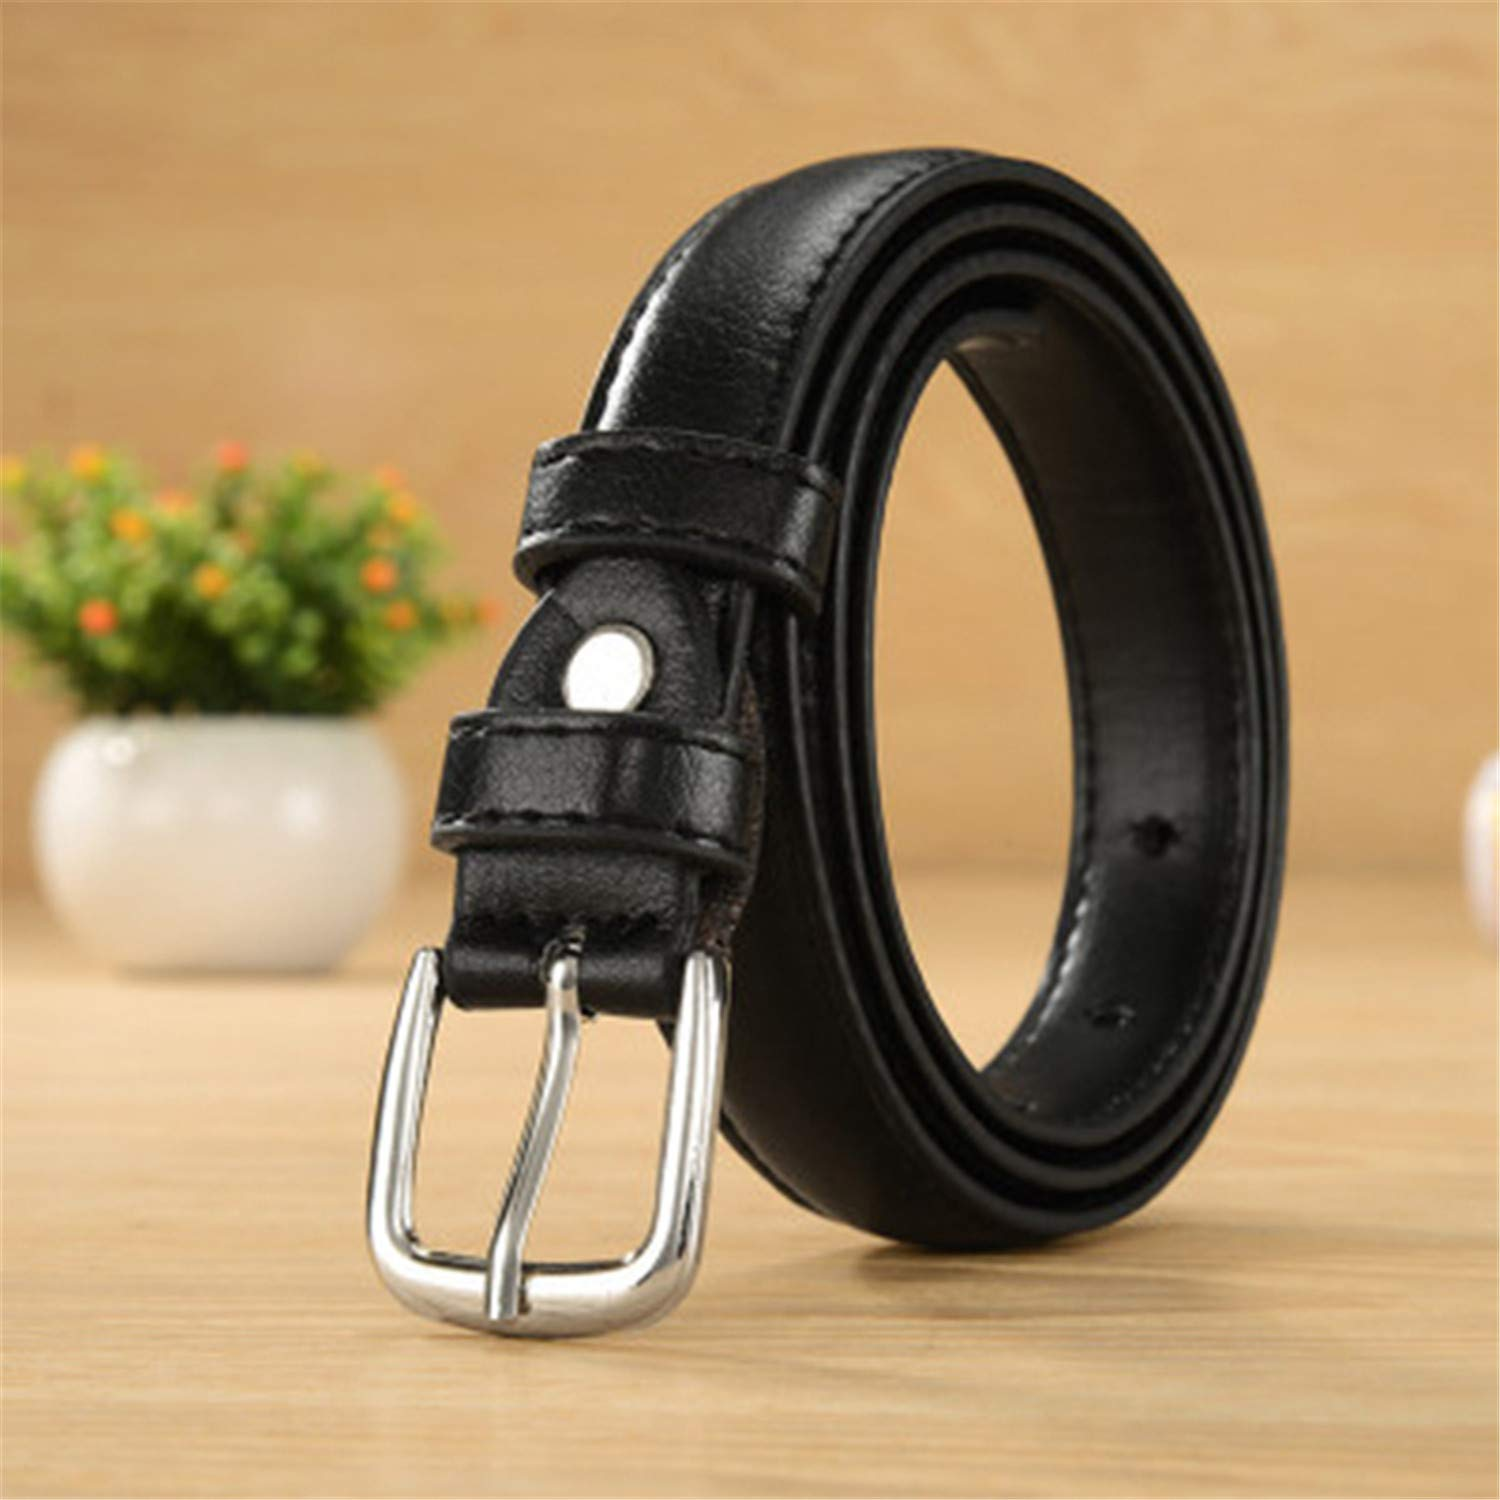 Cyose Fashion PU Leather Womens Belt Thin Solid Belts For Women Casual Strap Female Women Belt With Buckle For Jeans